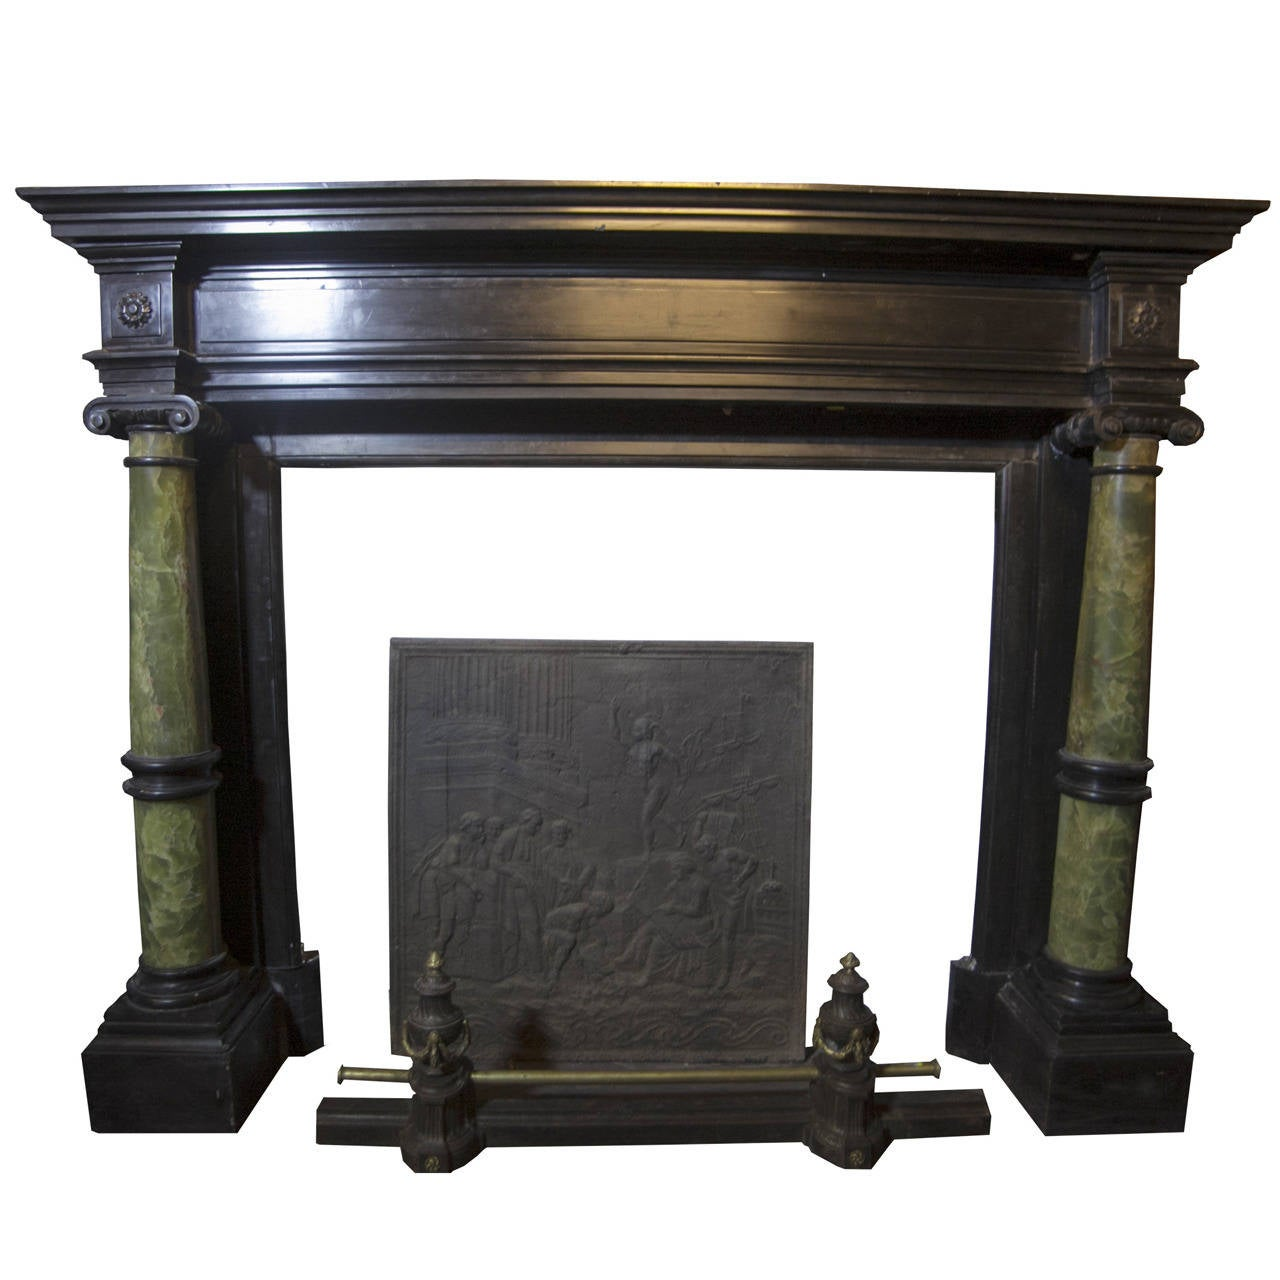 Antique Fireplace Black Belgian Marble and Green Onyx